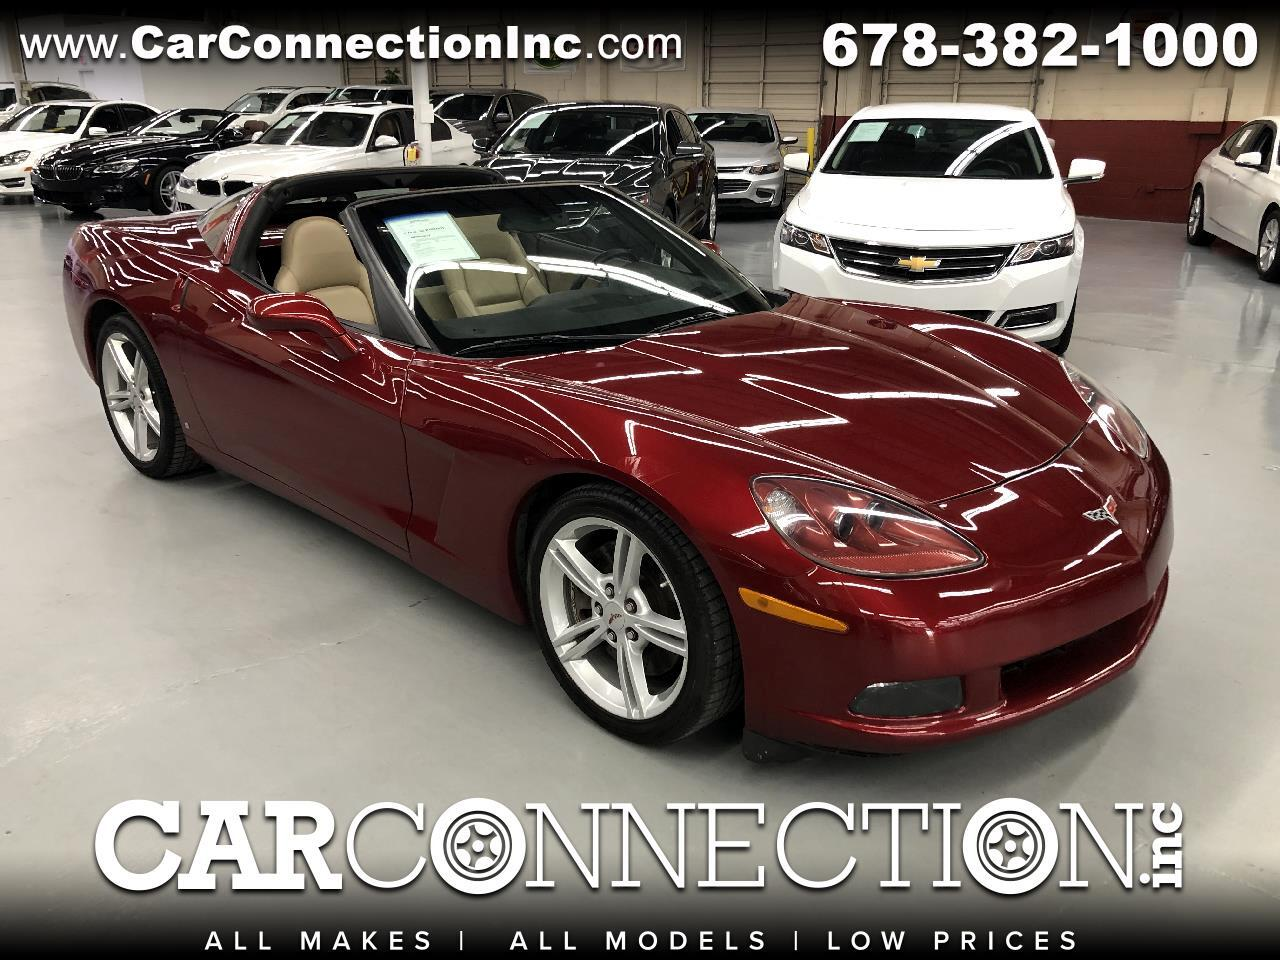 2008 Chevrolet Corvette Z51 3LT Coupe Manual